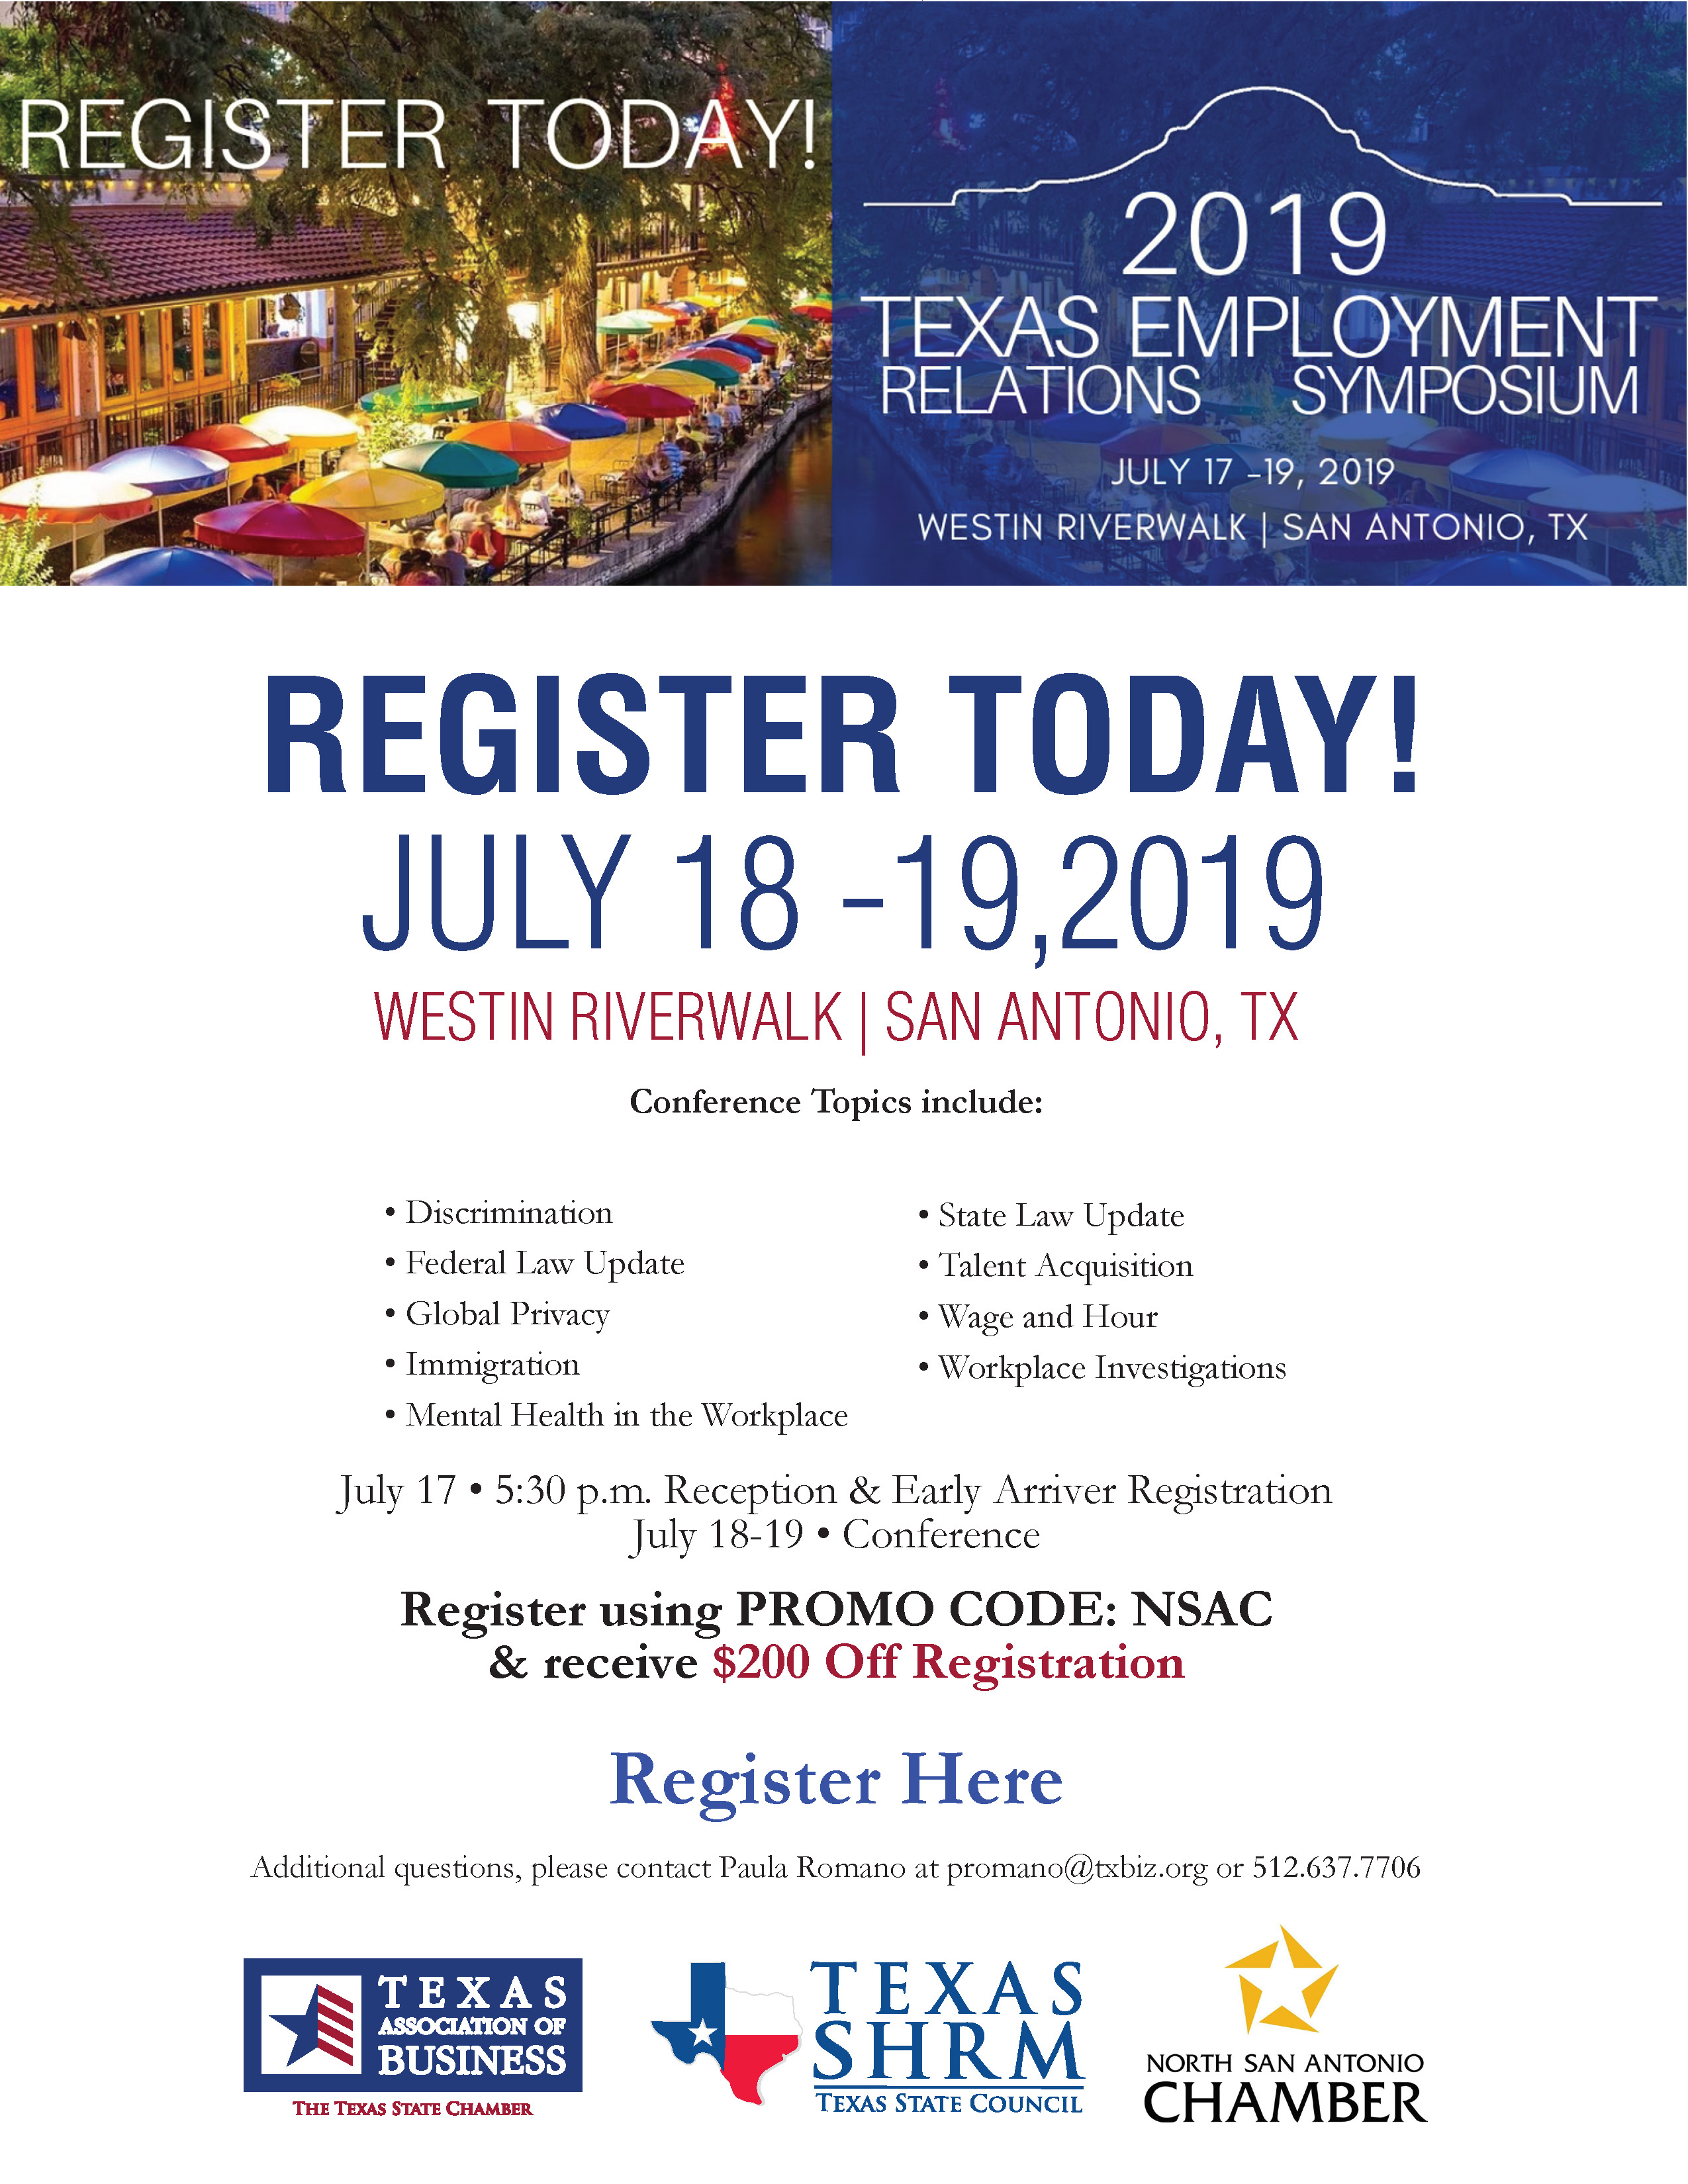 TX Employment Relations Symposium